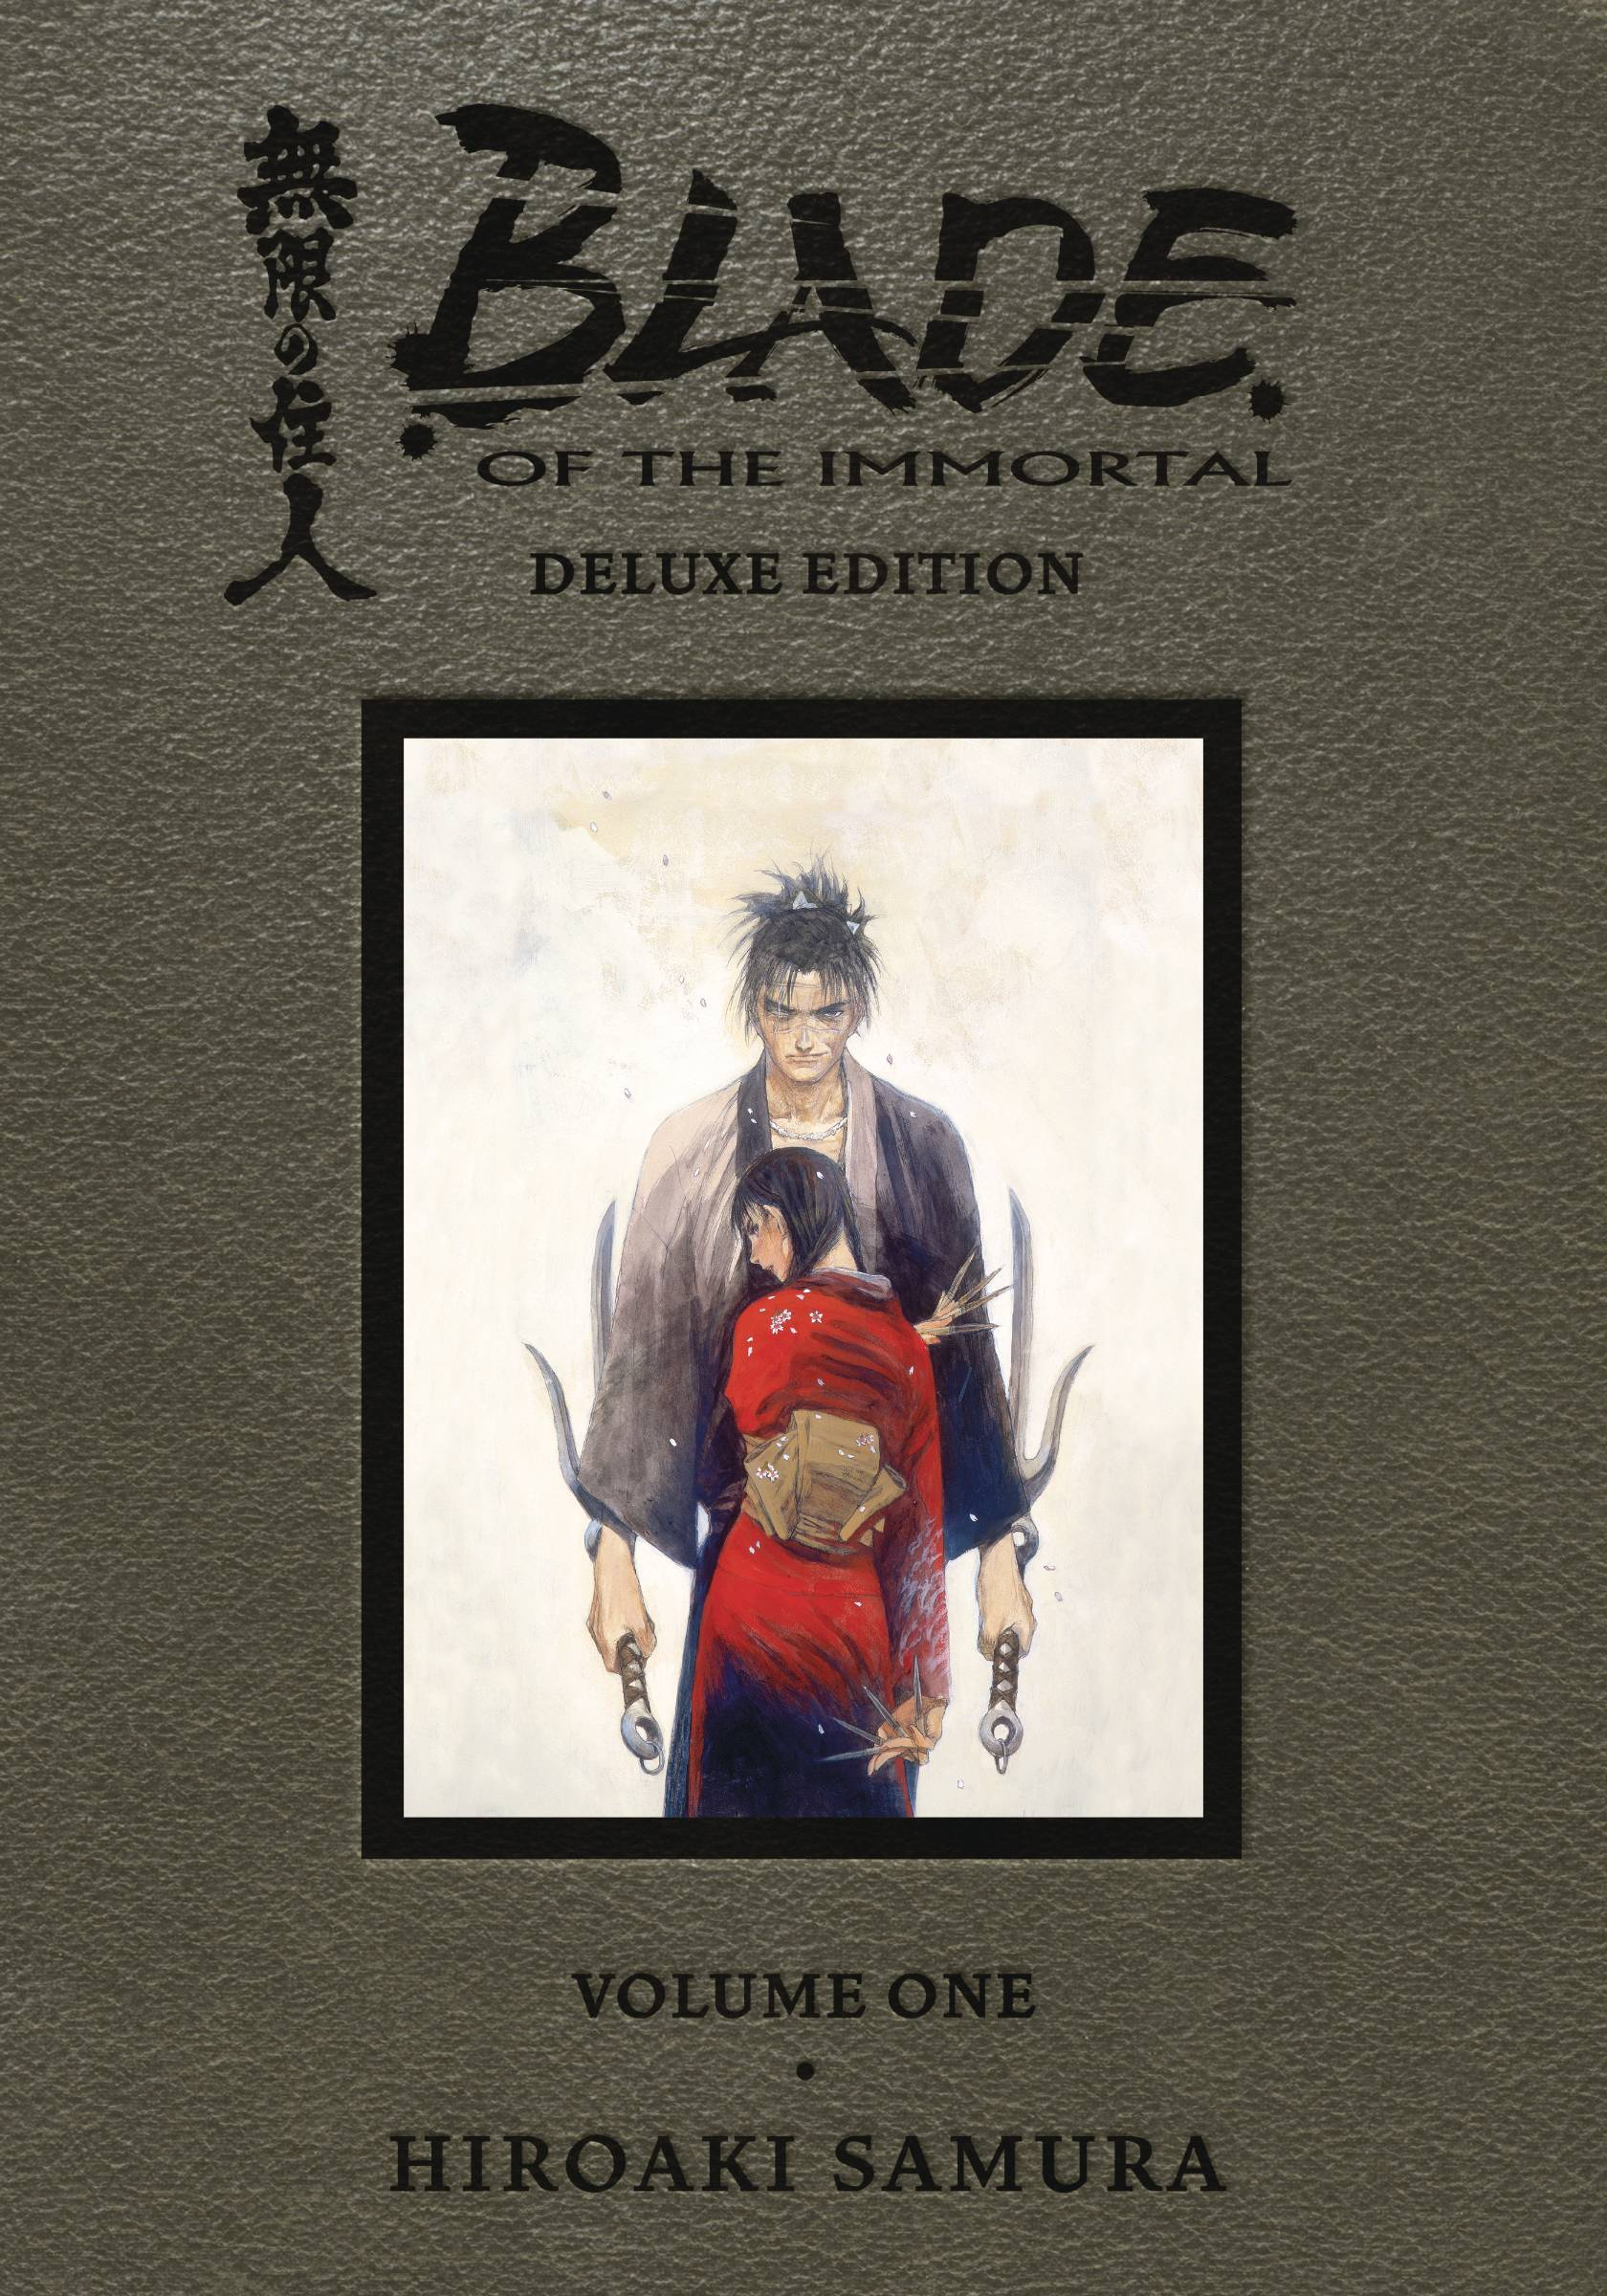 BLADE OF IMMORTAL DLX ED HC 01